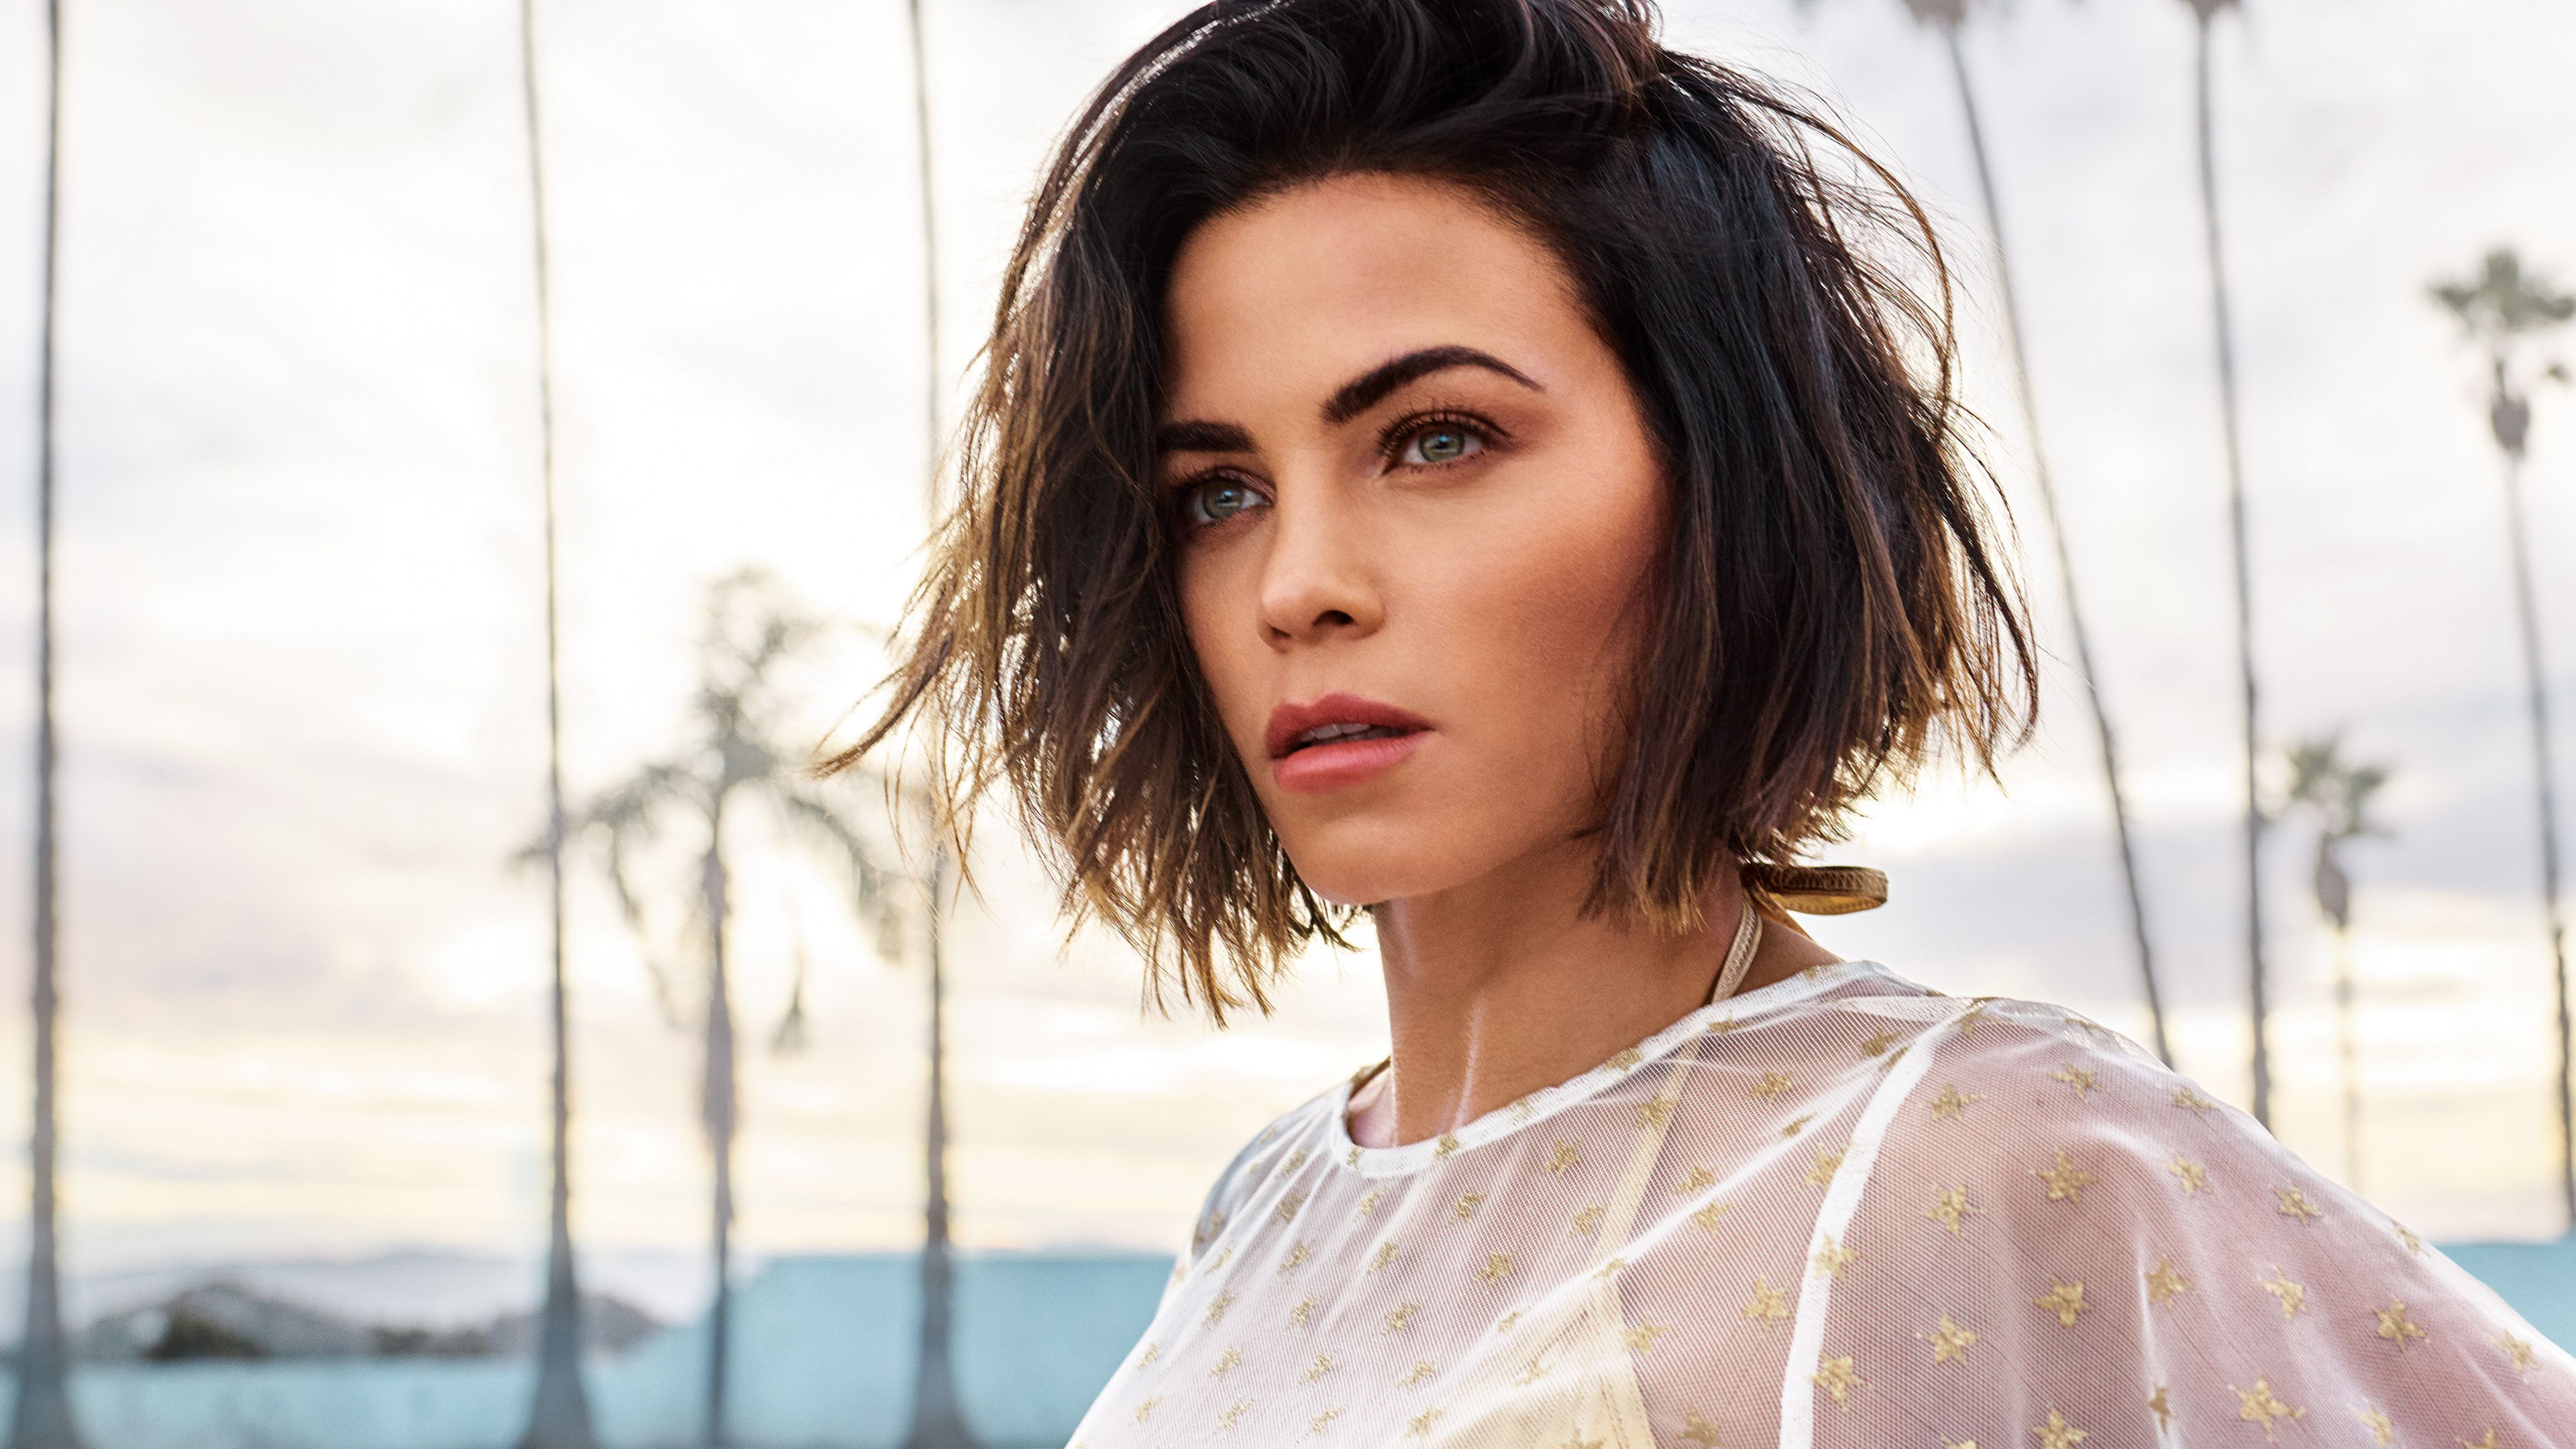 jenna dewan 2019 photoshoot 1536863296 - Jenna Dewan 2019 Photoshoot - photoshoot wallpapers, jenna dewan wallpapers, hd-wallpapers, girls wallpapers, celebrities wallpapers, 4k-wallpapers